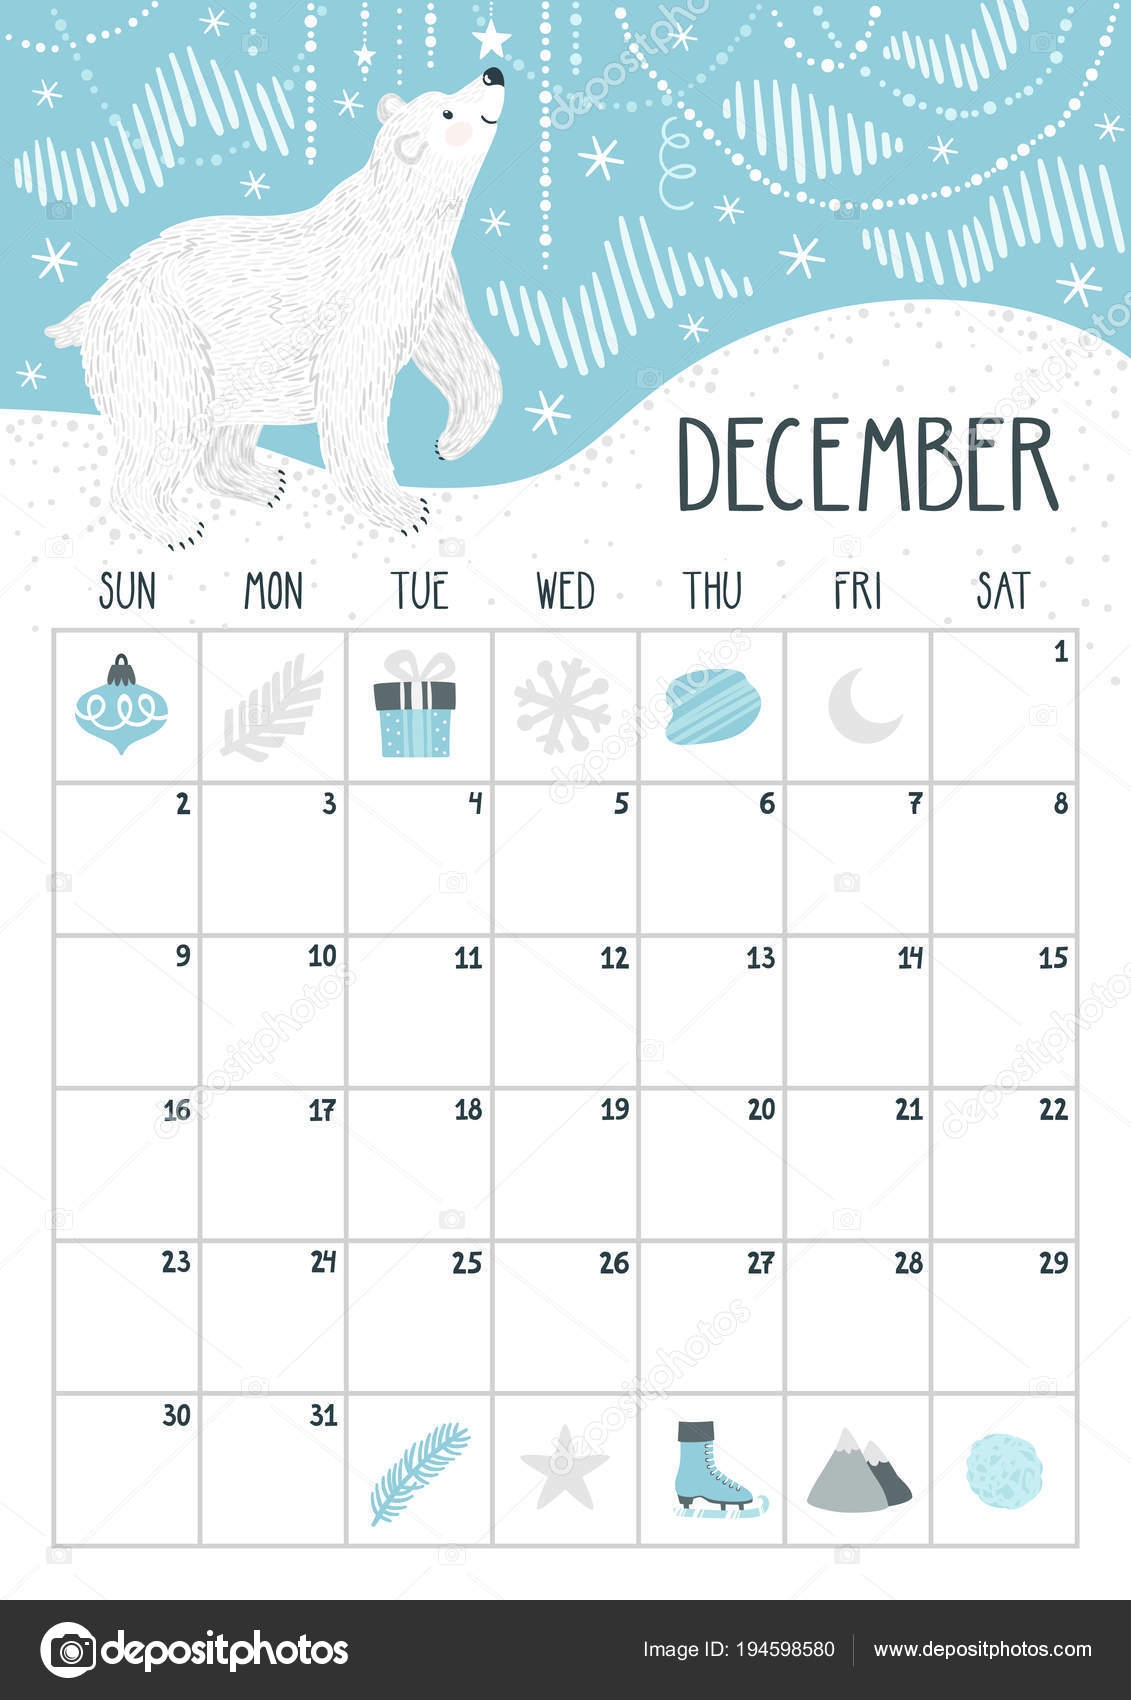 vector monthly calendar with cute polar bear december 2018::December 2018 Calendar Cute